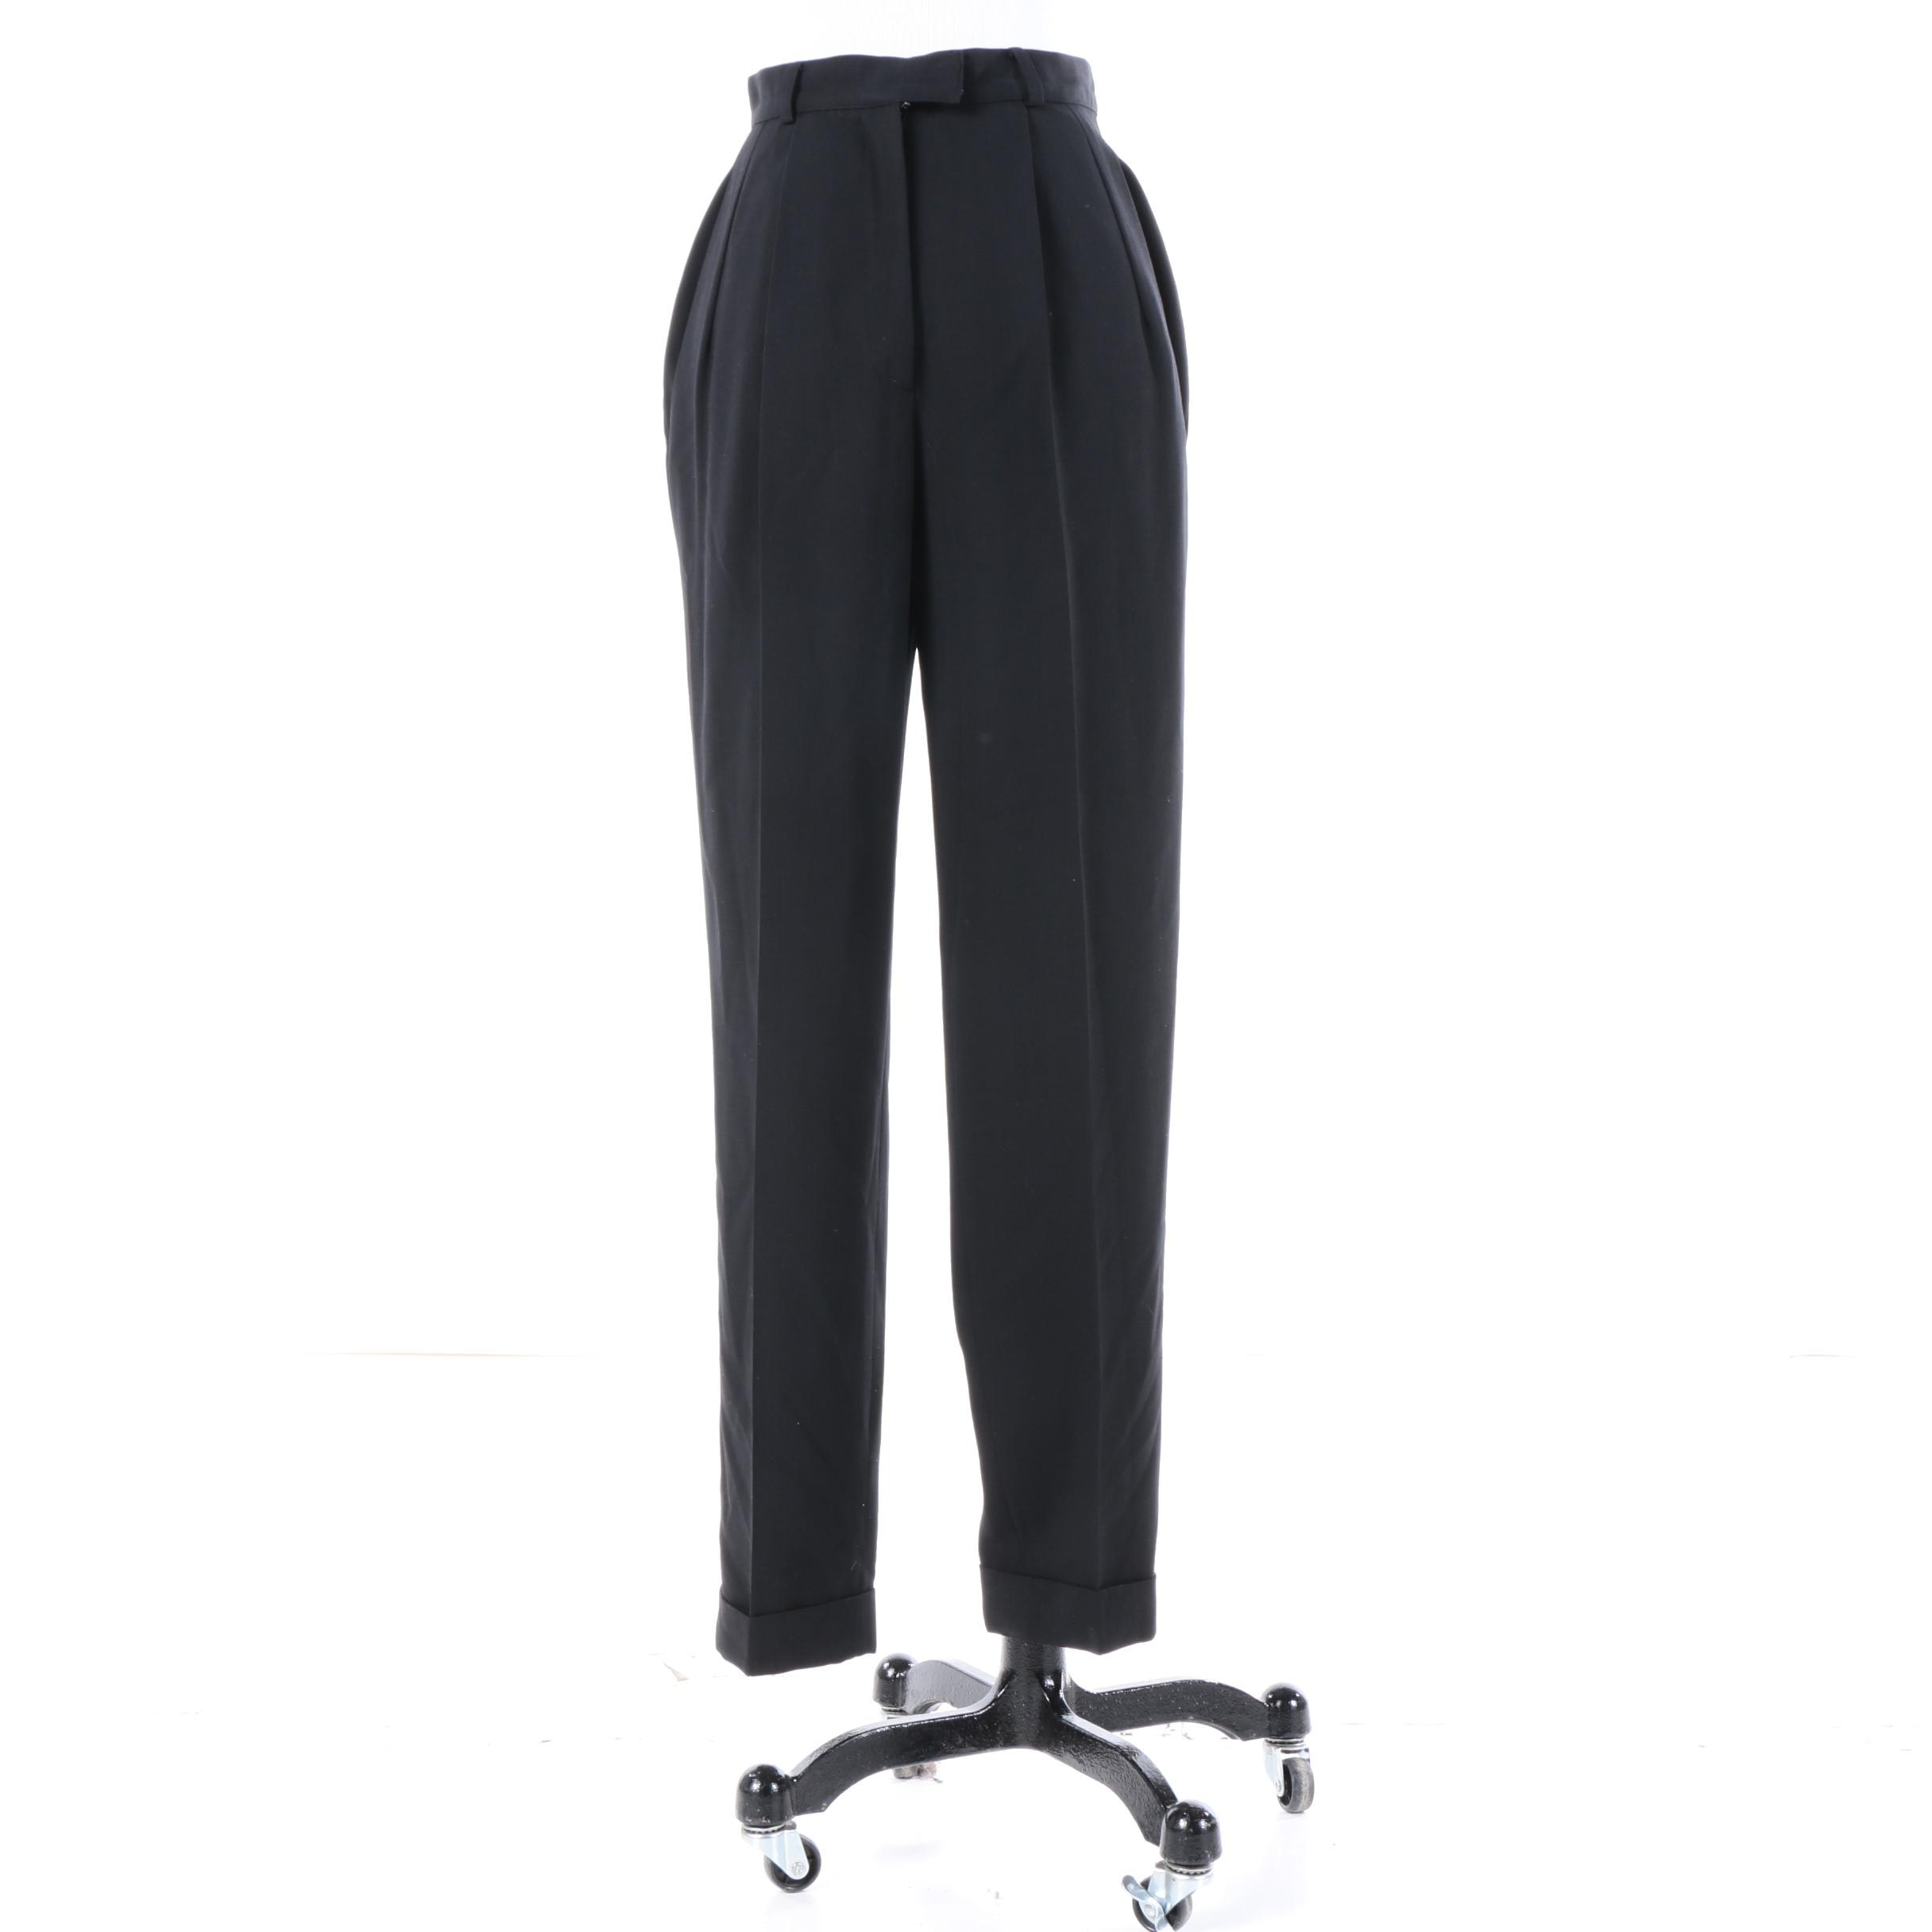 Women's Michael Kors Black Wool Pants